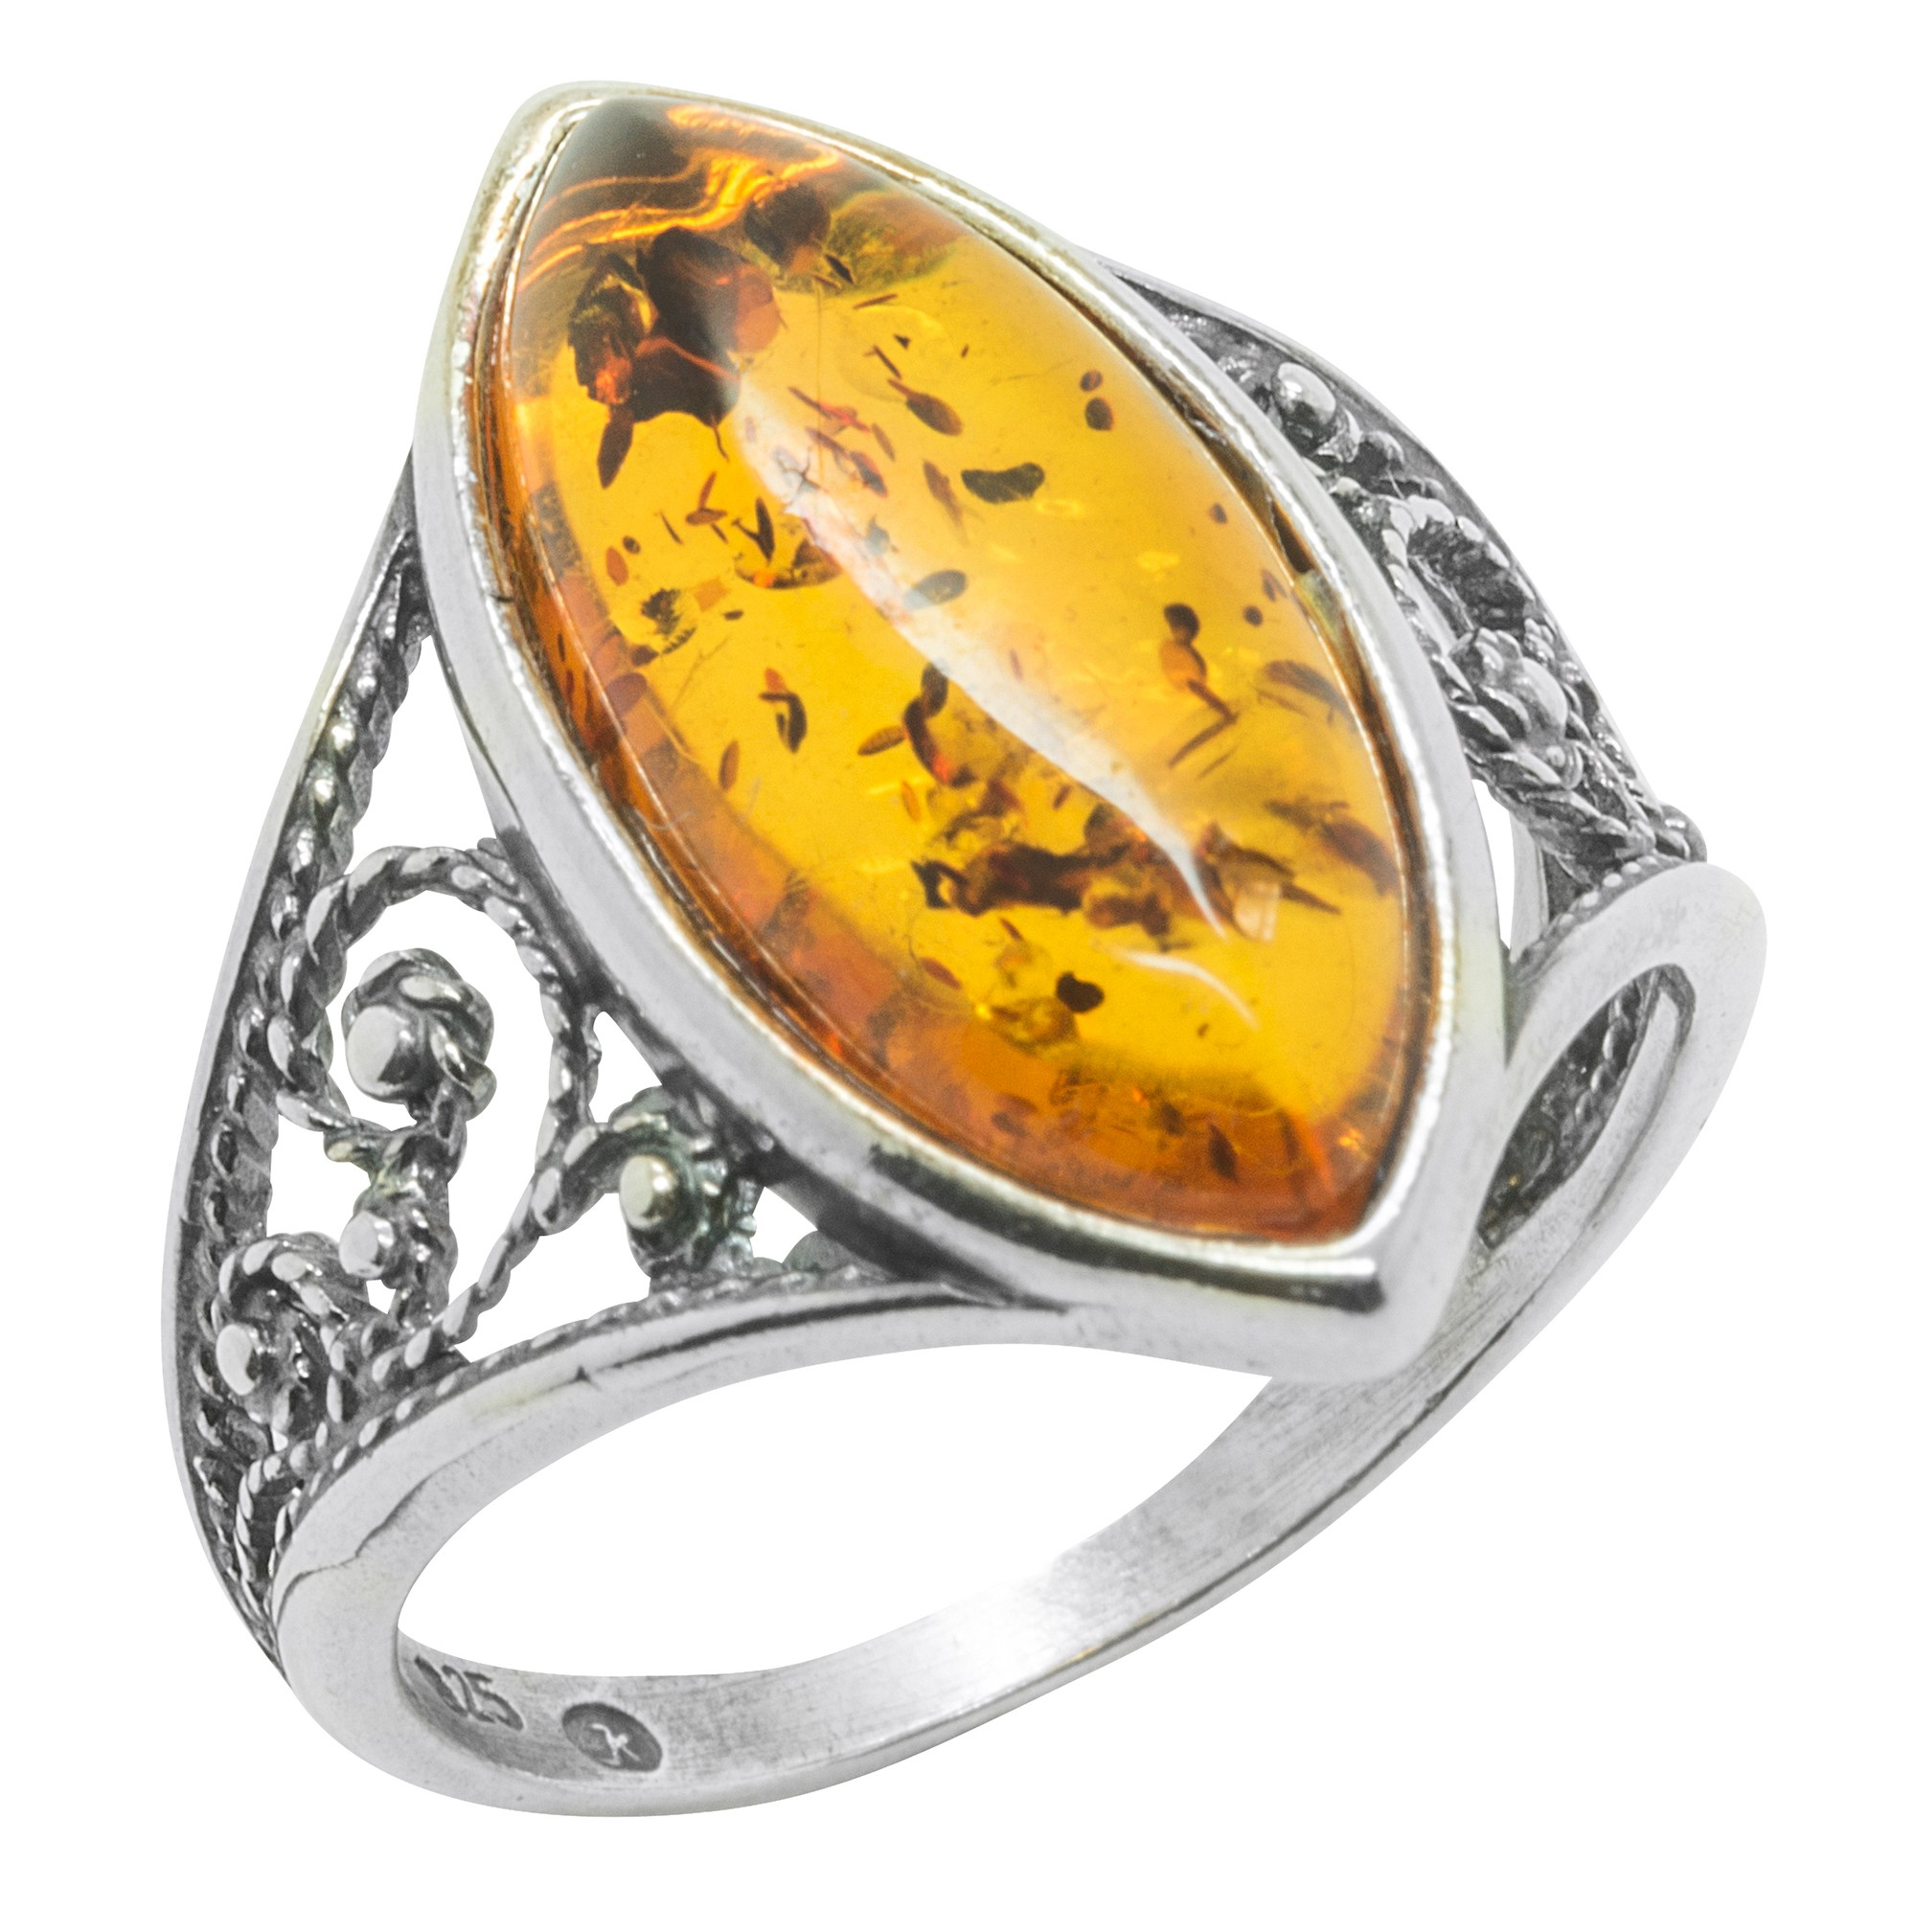 sloane ripple ring product jewellery engagement gold rings yellow amber citrine mcdonough kiki